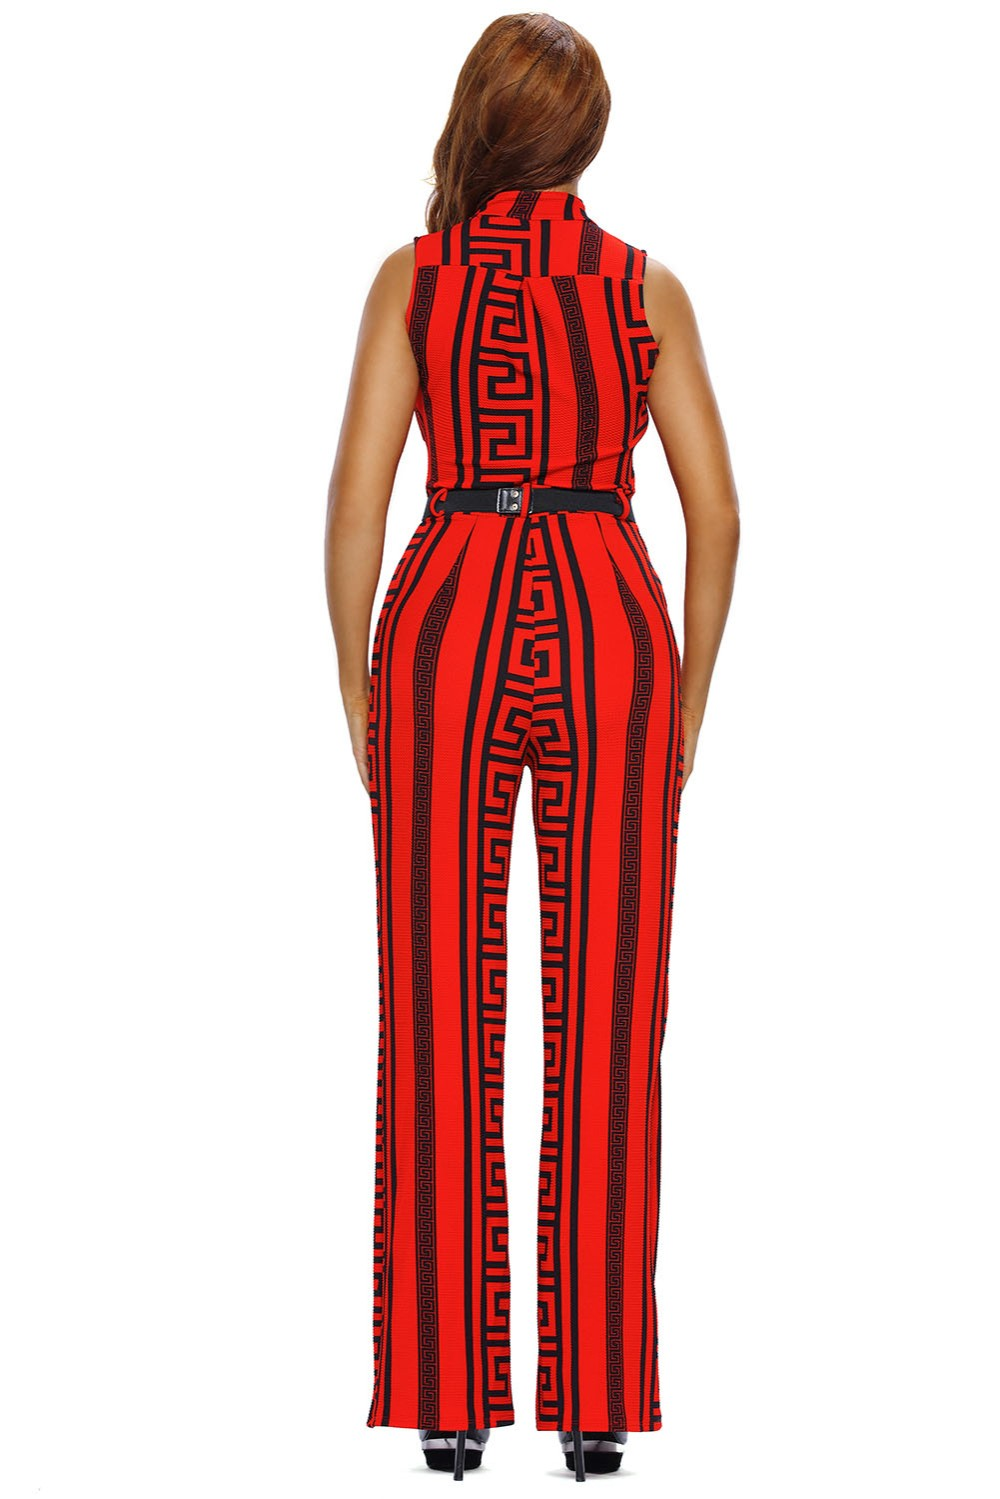 Red-Print-Gold-Belted-Jumpsuit-LC64021-3-4